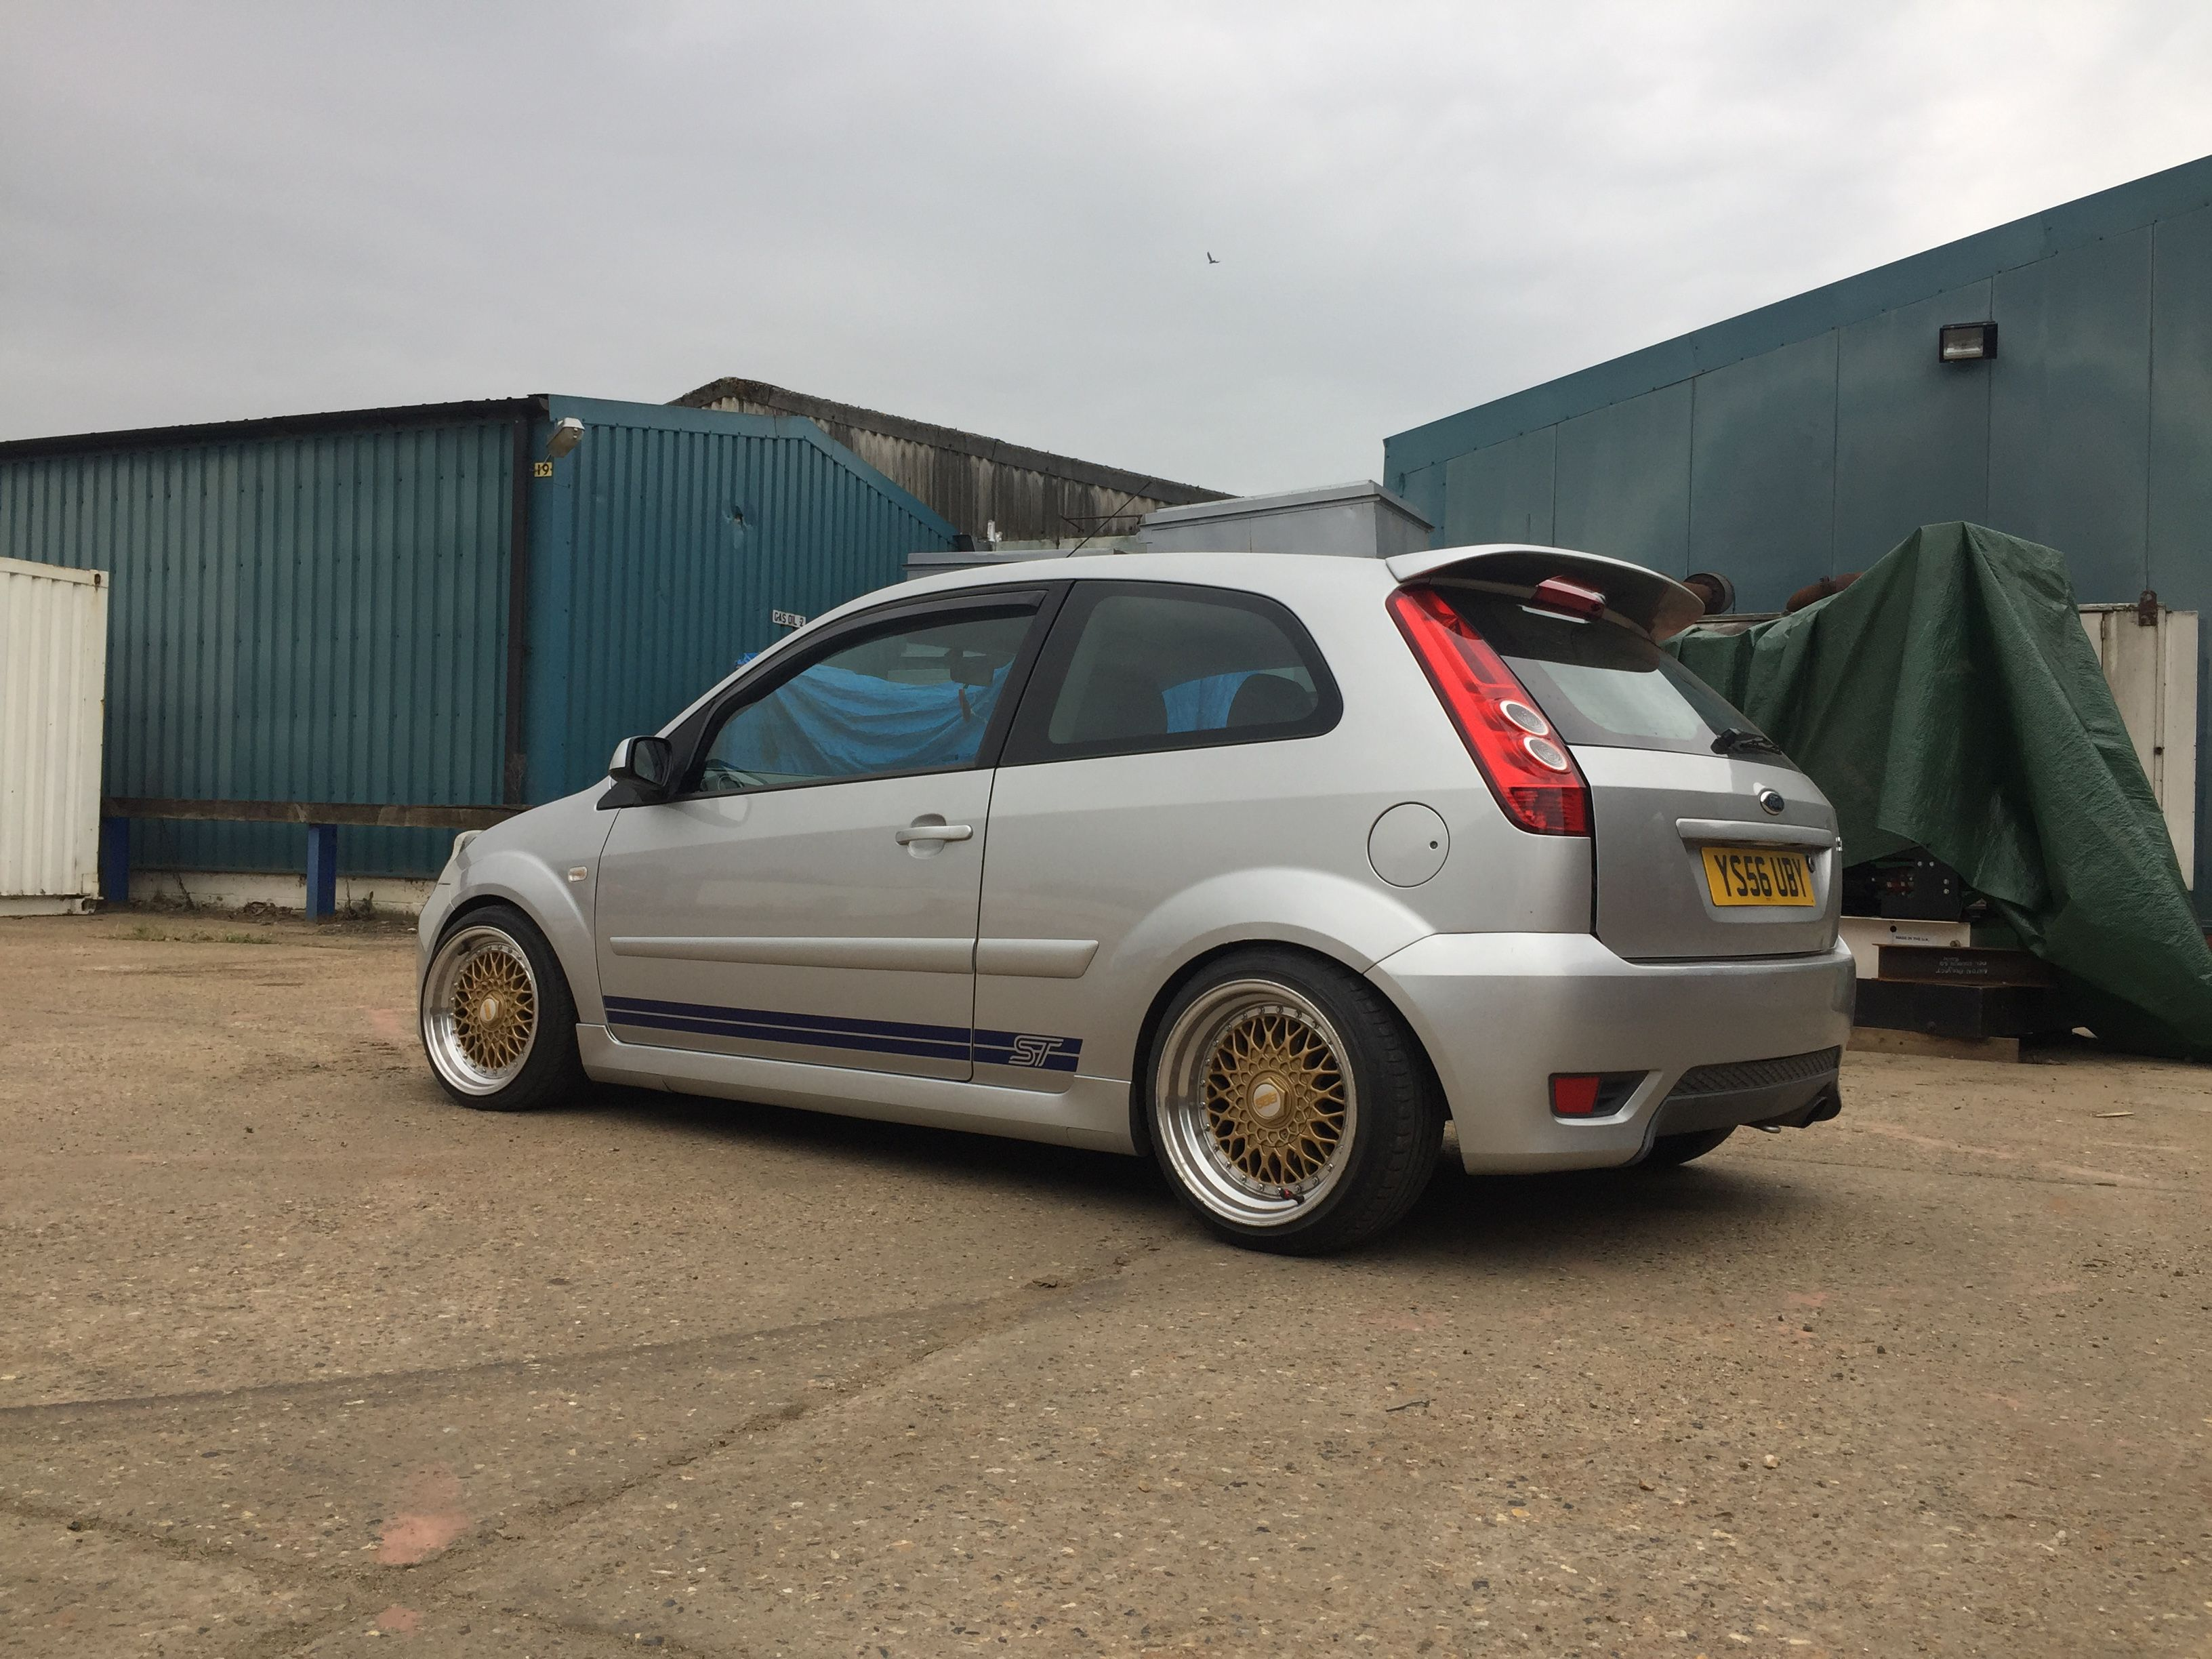 Ford Fiesta Mk6 St 150 Lowered On Coilovers Bbs Style 16 Inch Wheels Stance Stretched Tyres